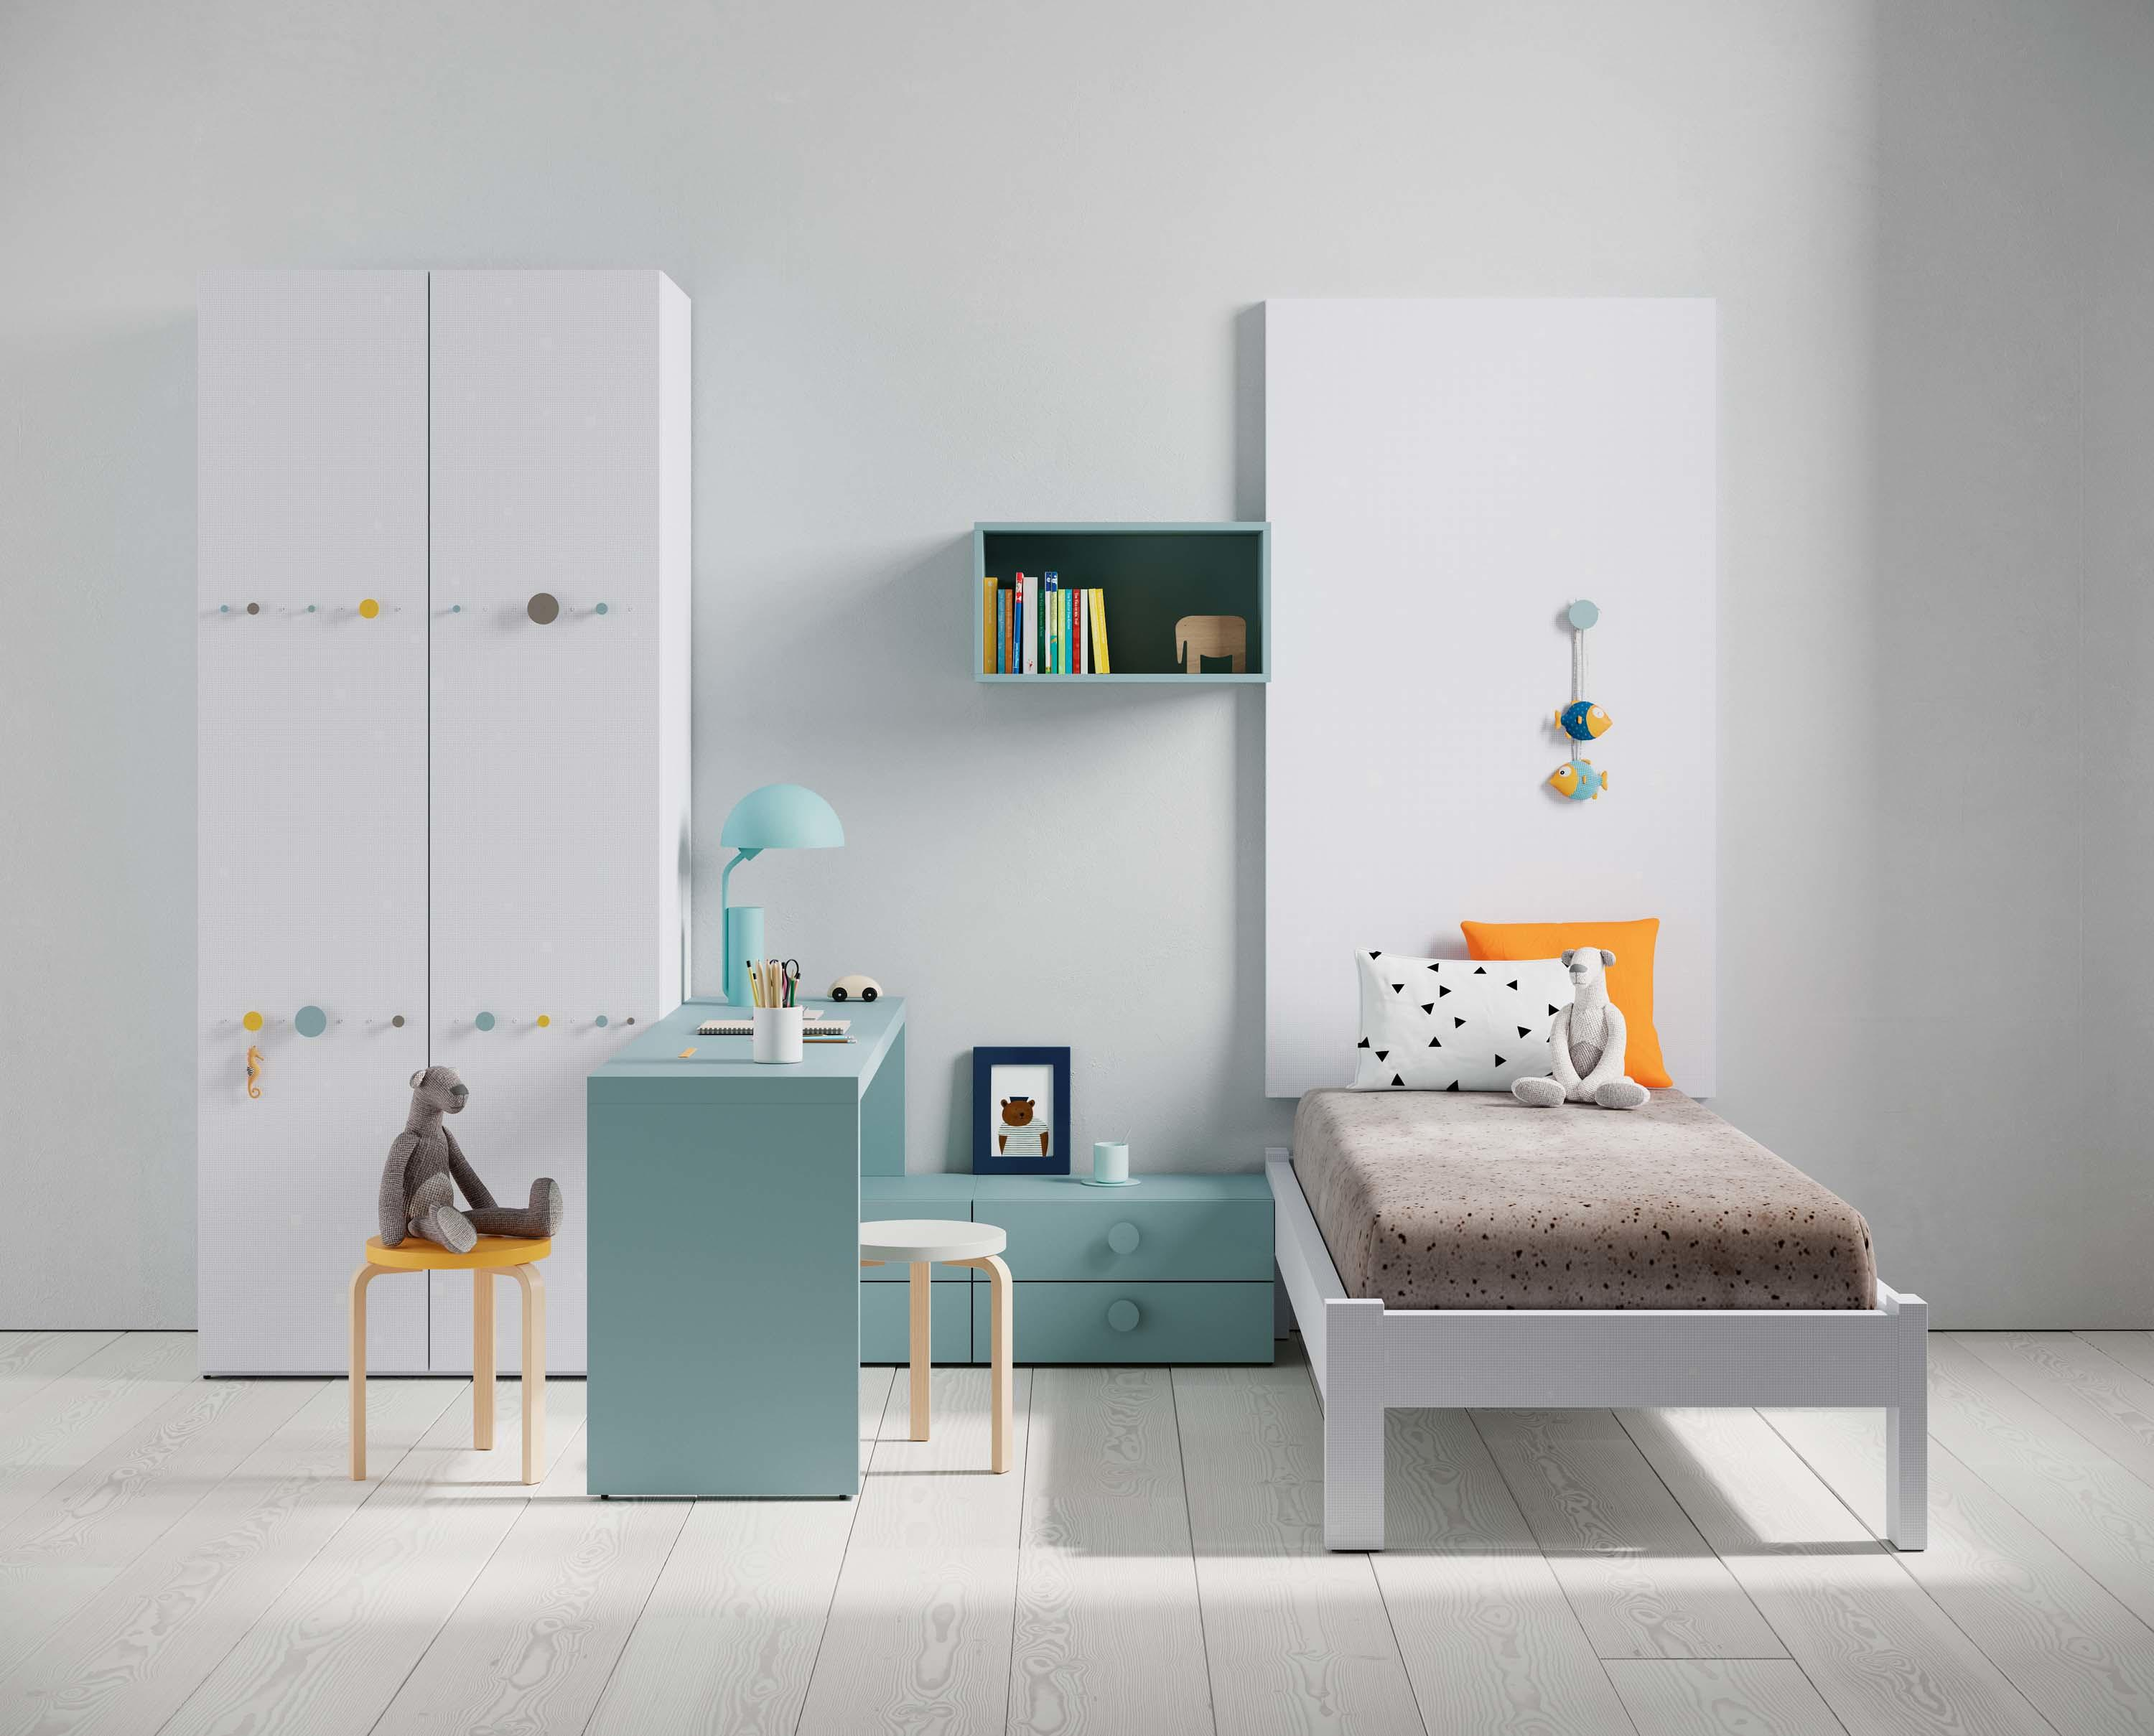 Youth bedrooms 8 & designer furniture  Architonic